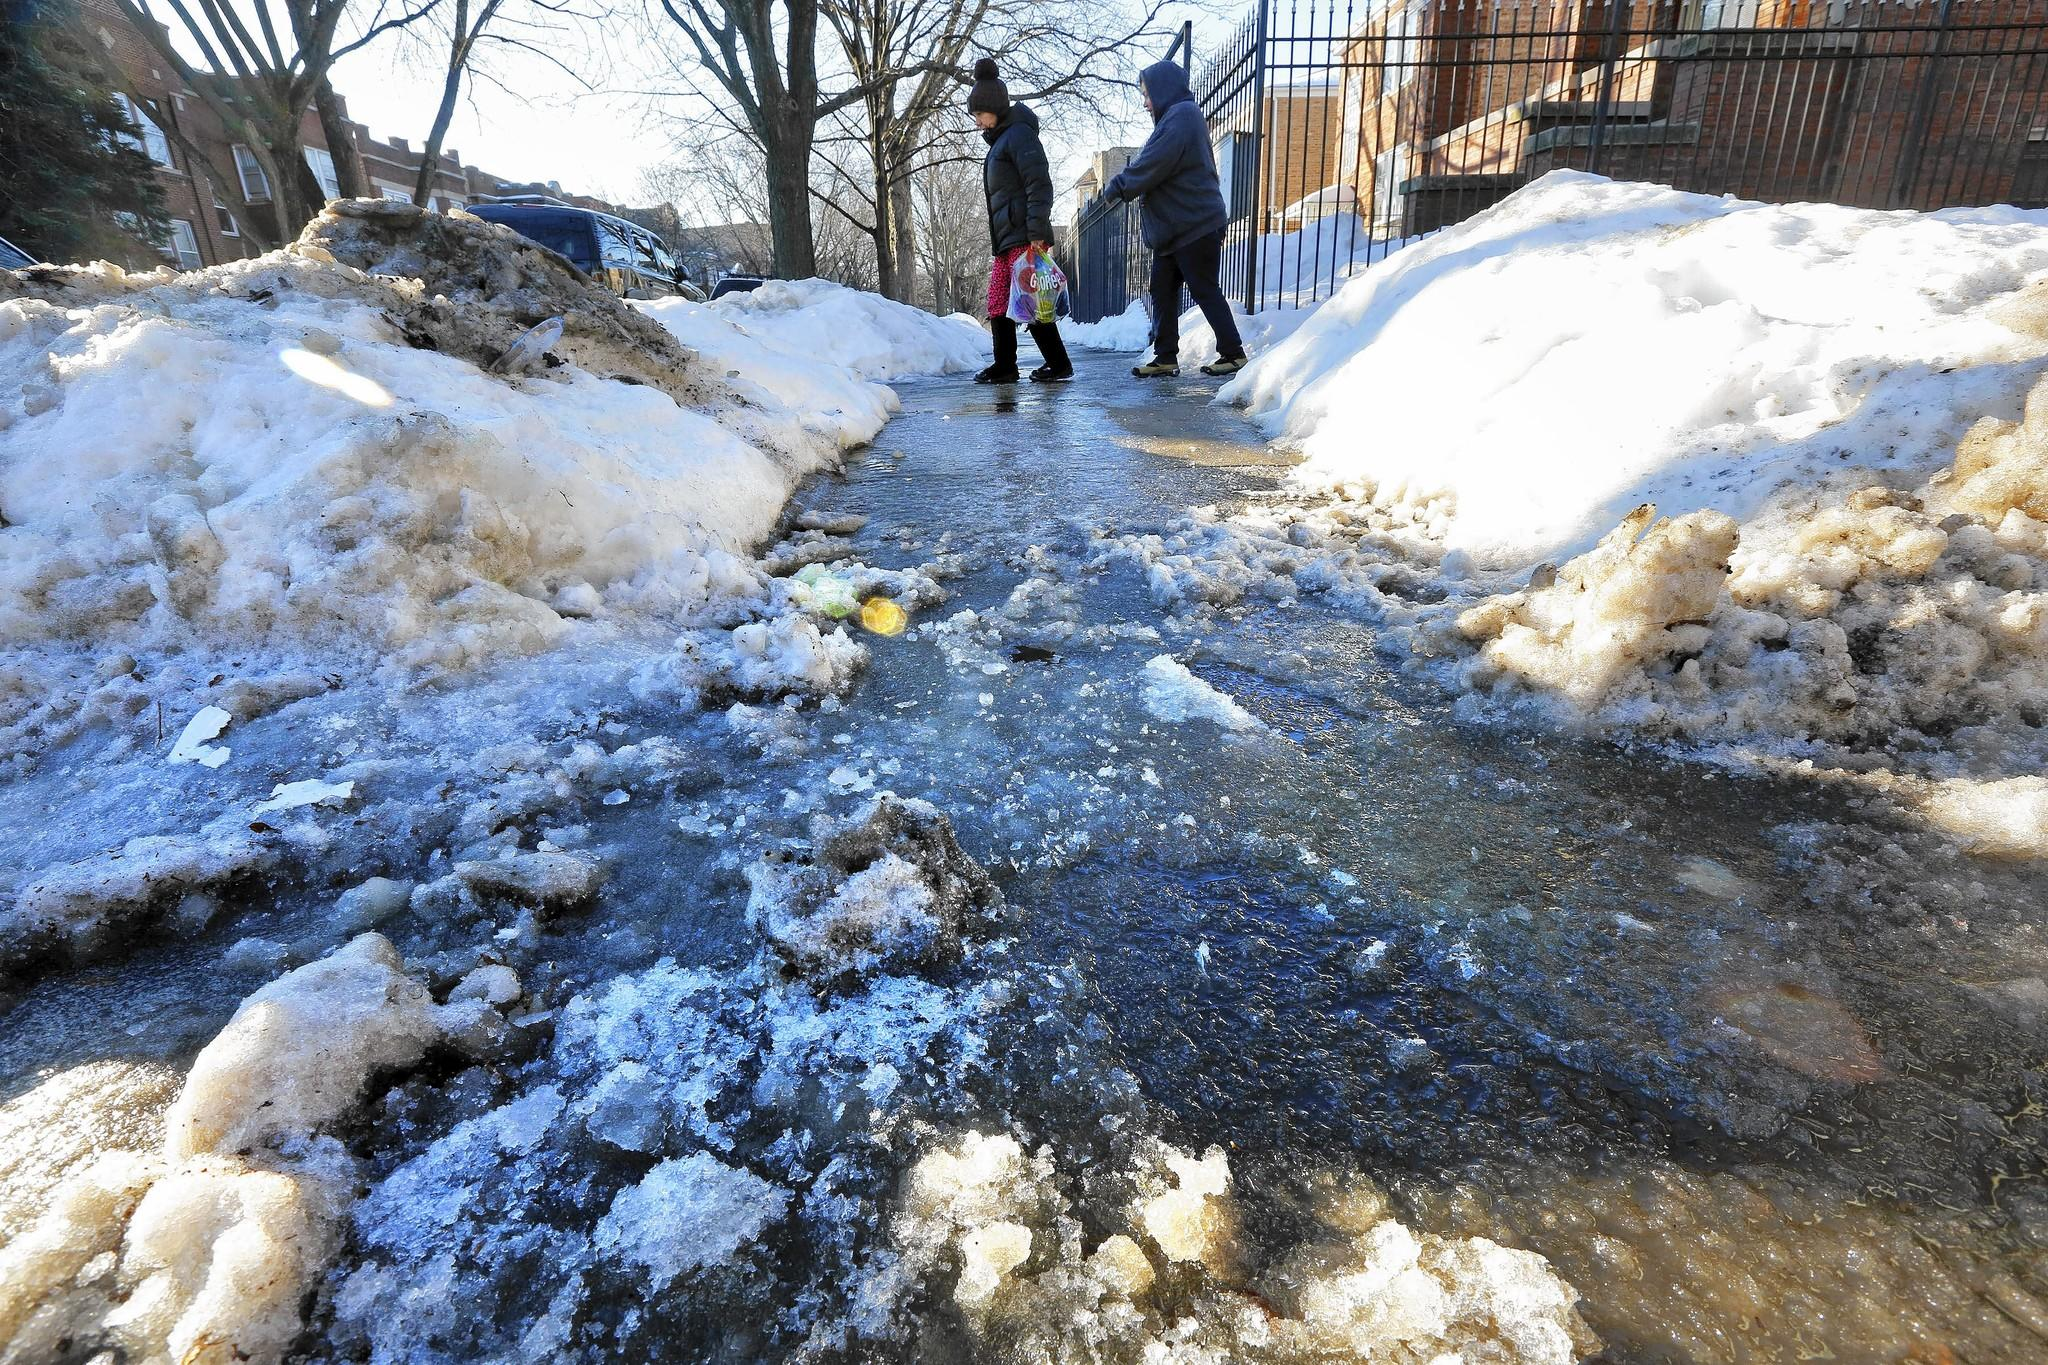 Two pedestrians walk on an icy sidewalk near a large puddle of water in the Albany Park neighborhood.